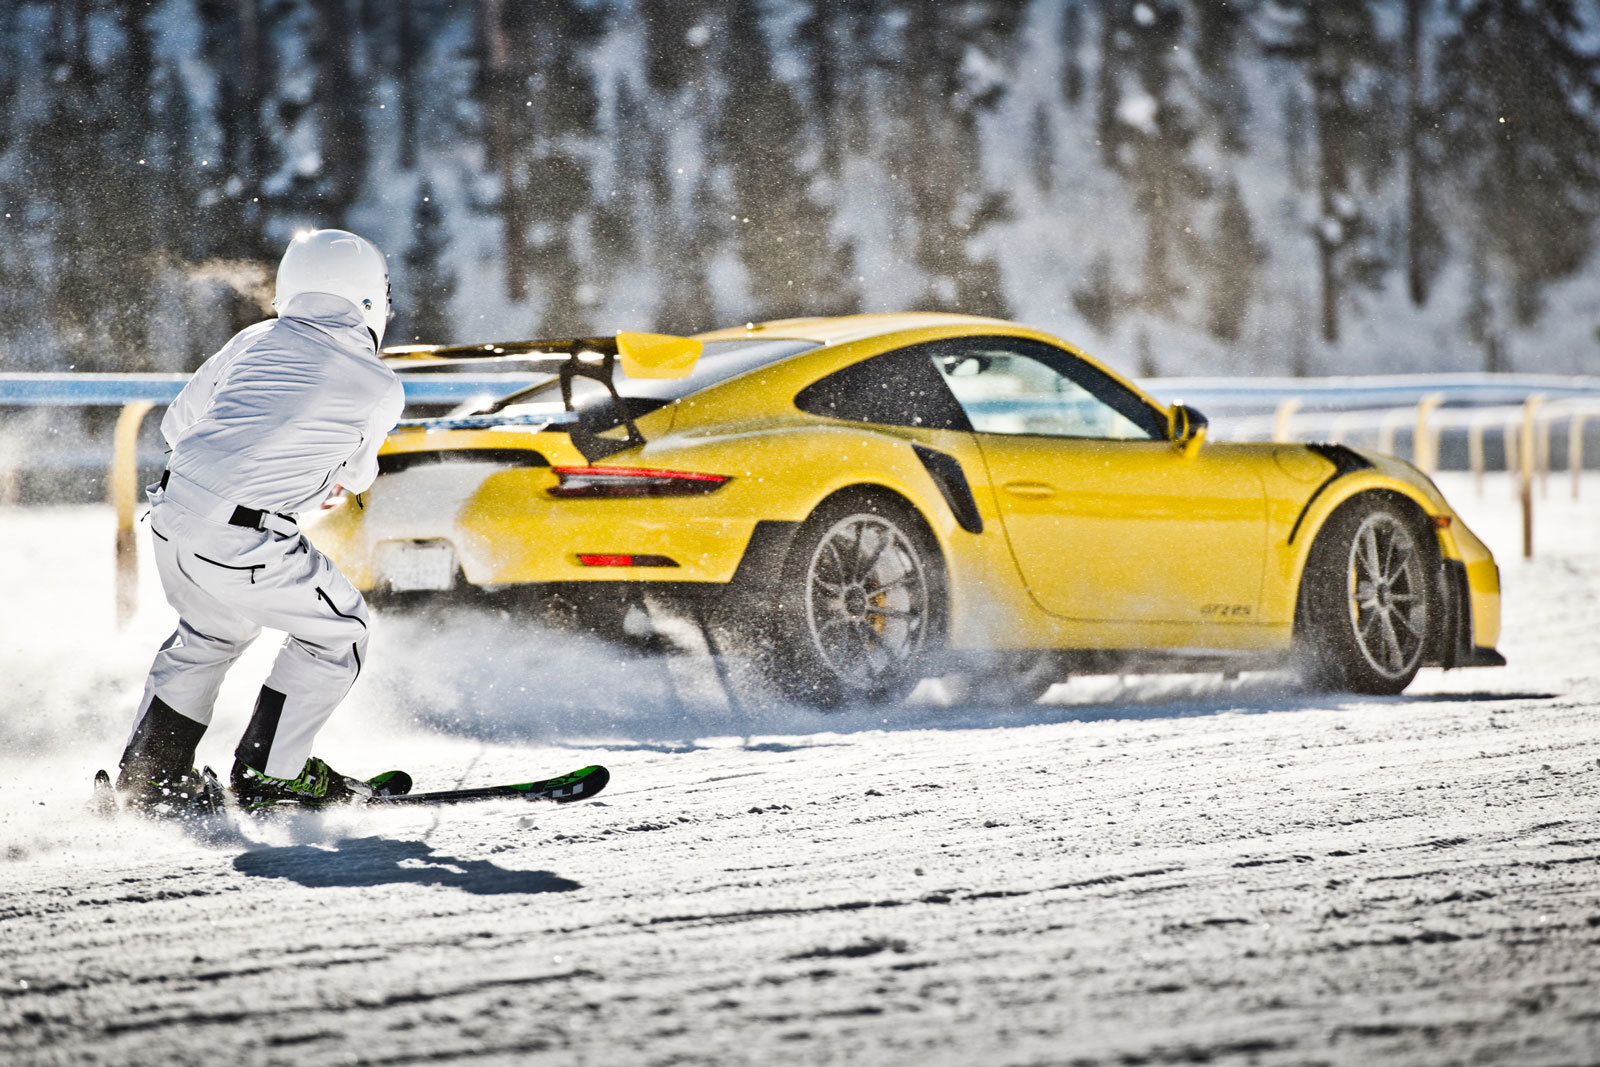 GP Ice Race in Zell am See-Kaprun